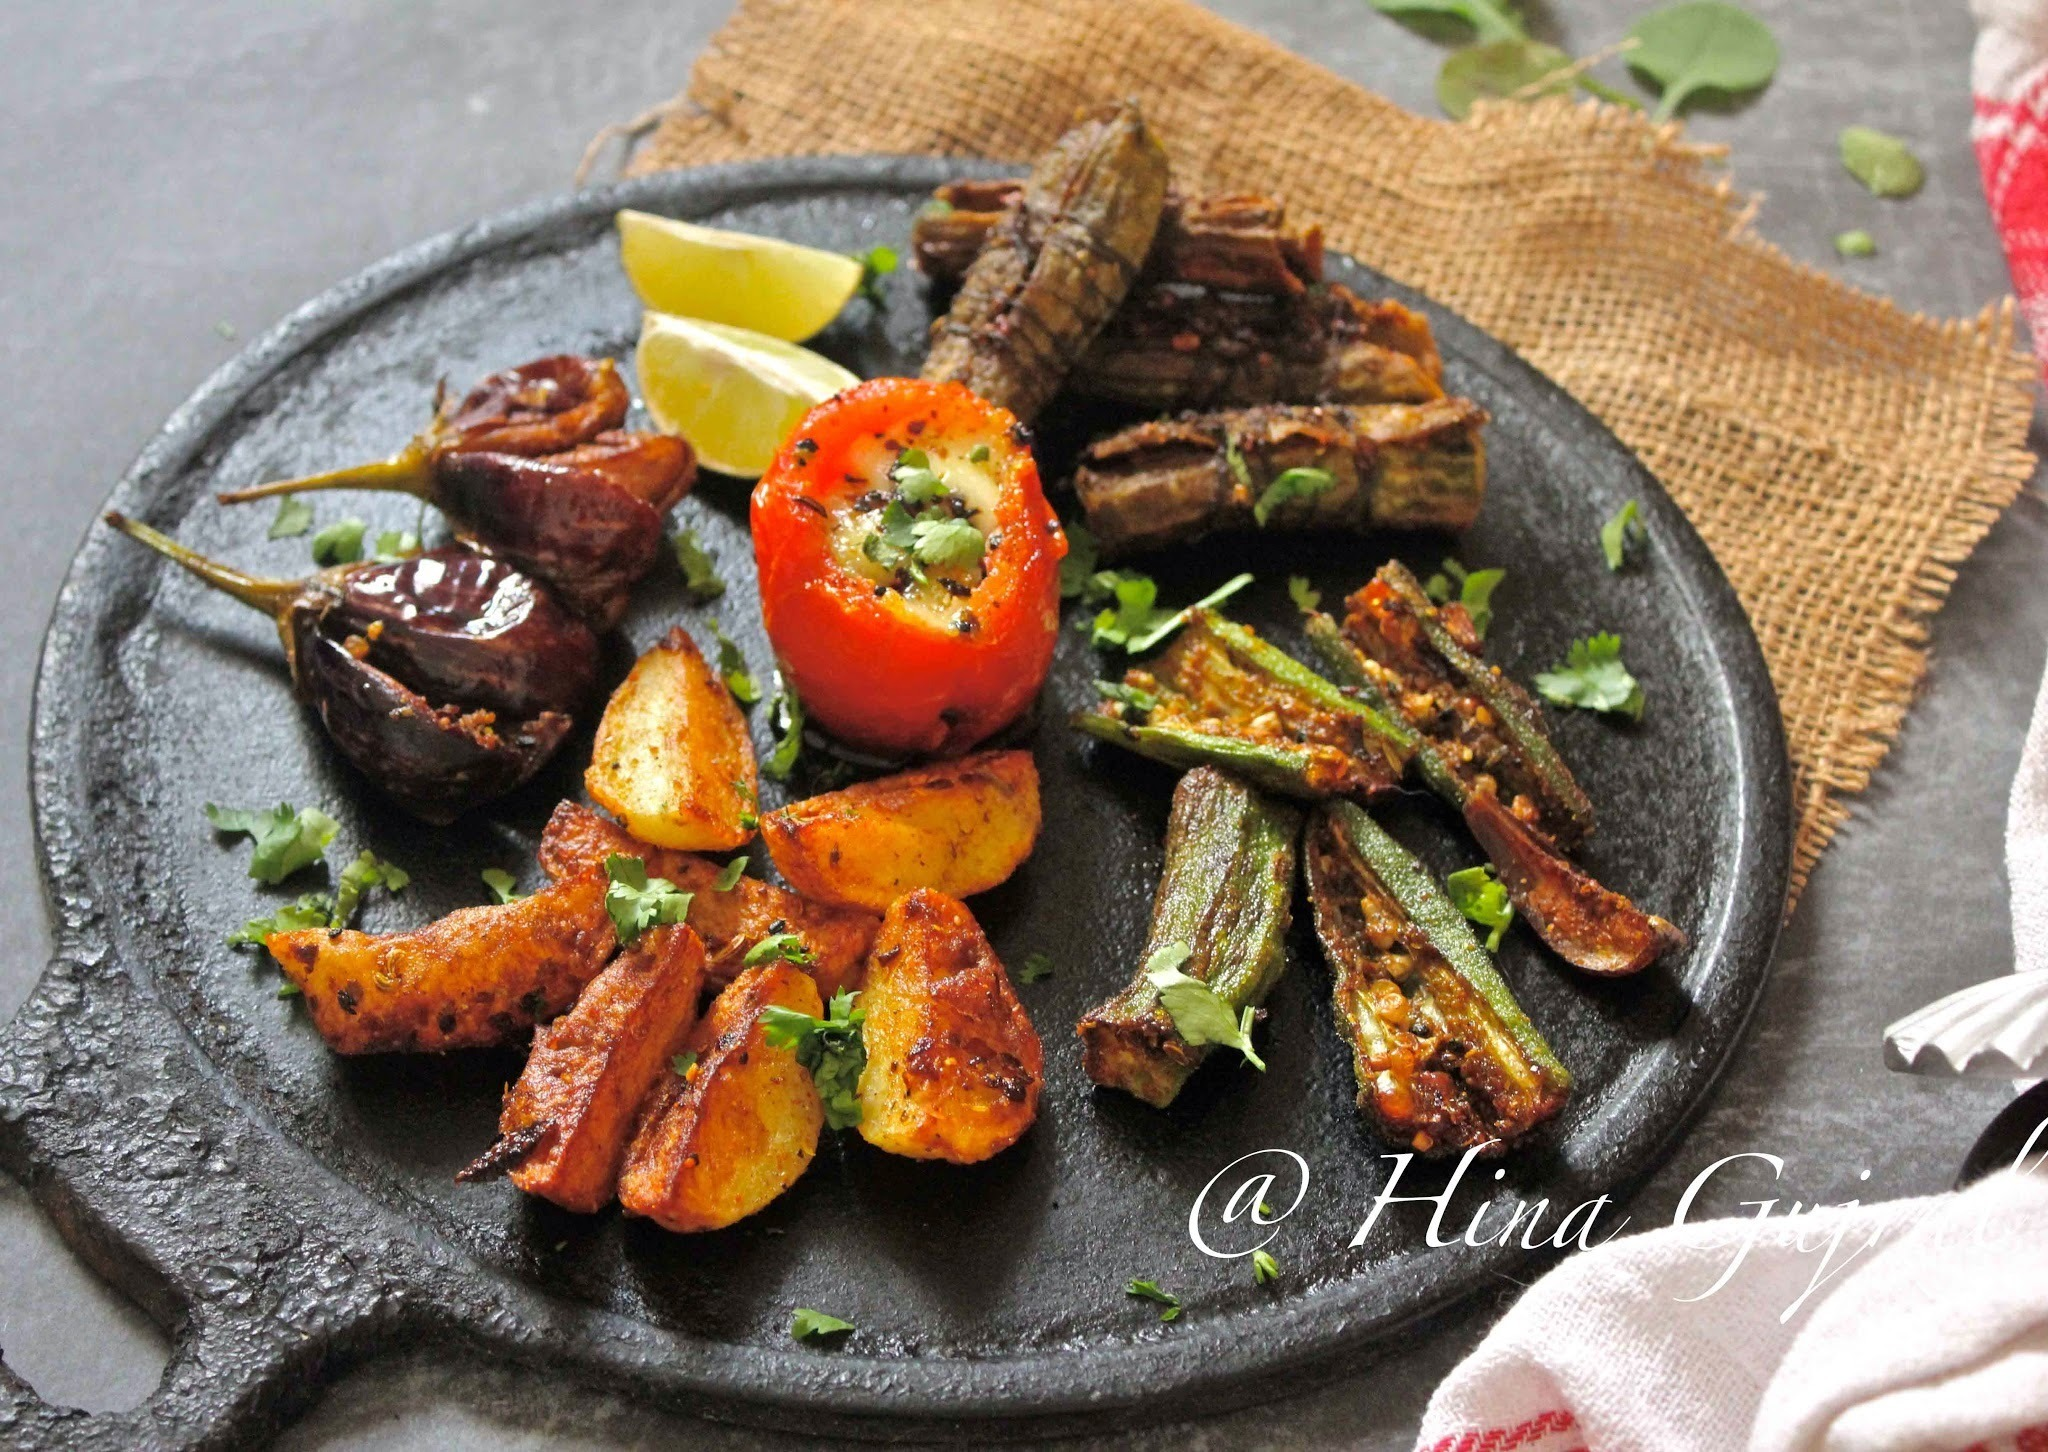 Tawa Fry Stuffed Vegetables - Pan fried mix vegetables in Indian Masala